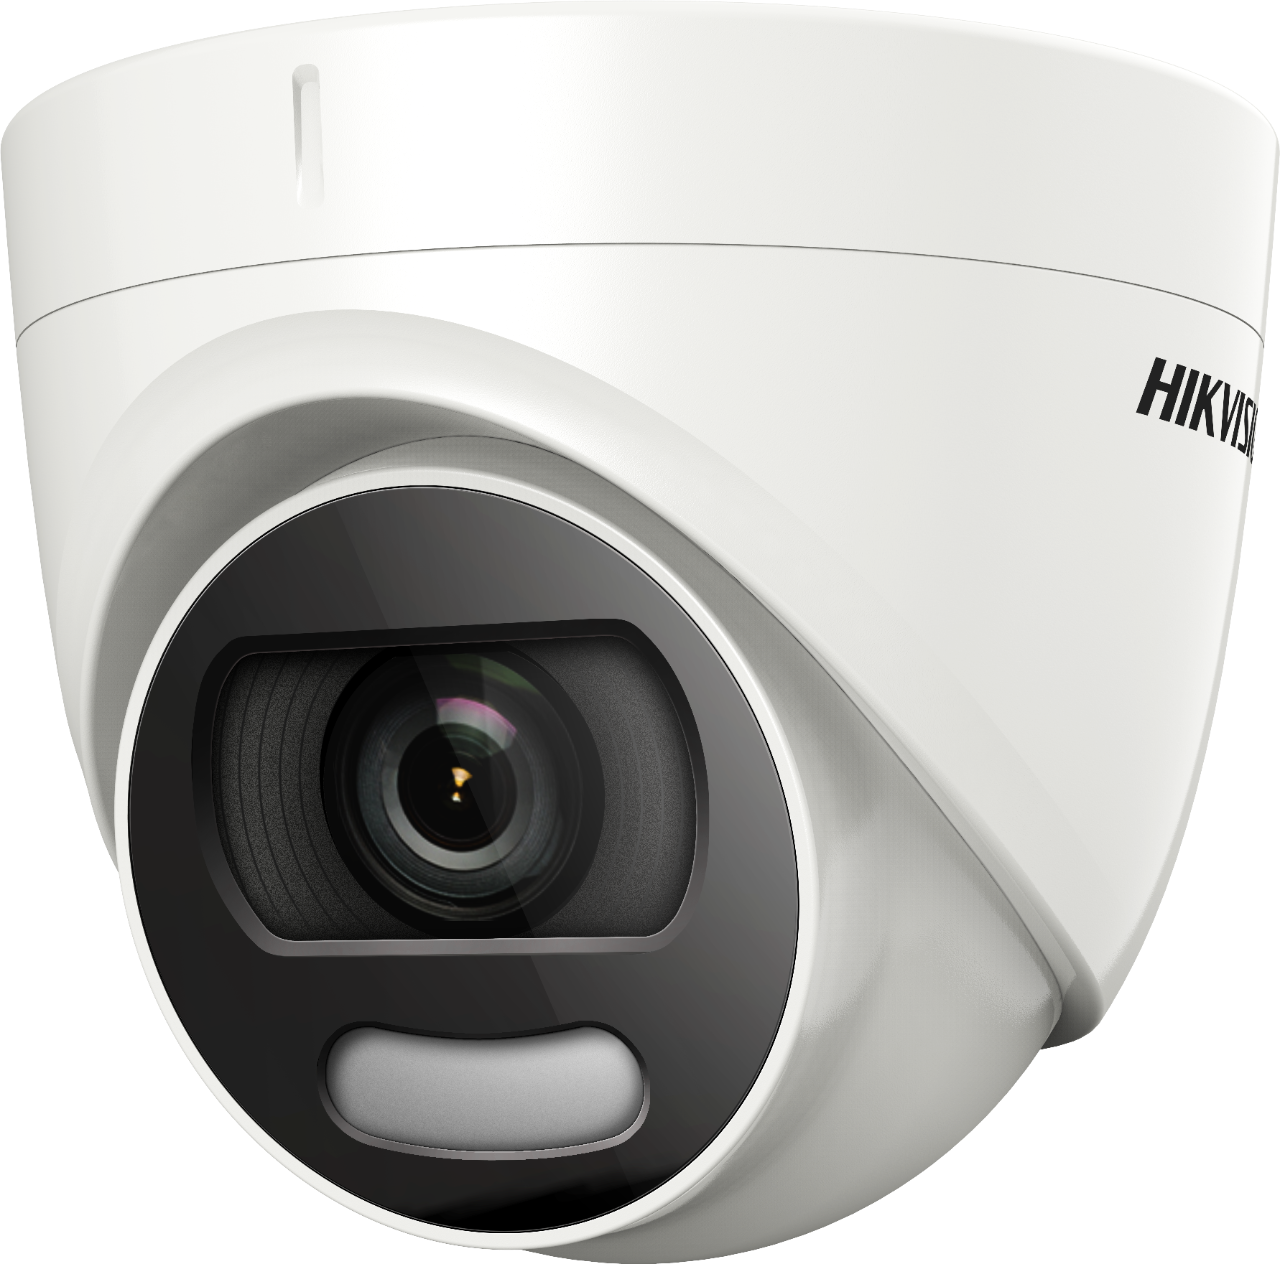 Telecamera Turbo HD HDoC bulbo oculare / torretta Per uso esterno Risoluzione: 5MP Obiettivo: 2.8mm Luce bianca 20m IP67 Alimentazione: 12VDC ColorVu - 24/7 a colori, 4in1, Up the Coax (HIkVision-C) 130dB True WDR